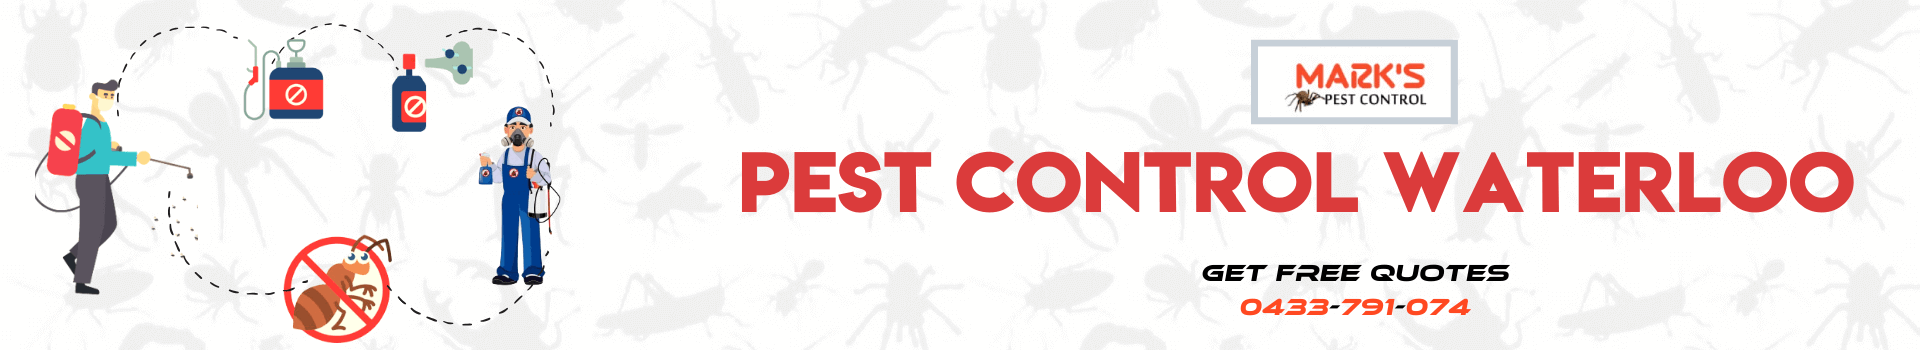 Pest Control Waterloo